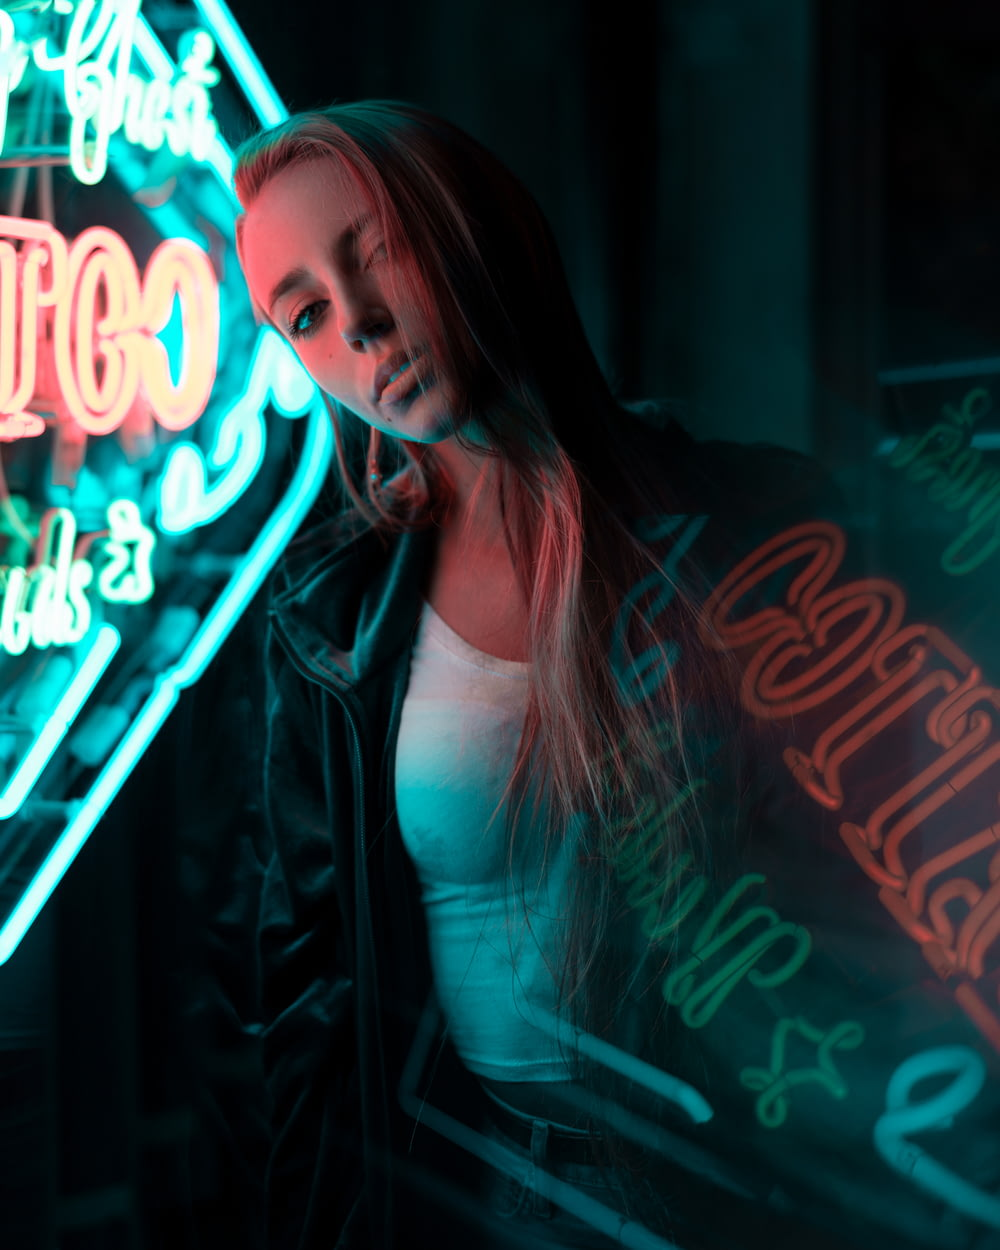 woman in white tank top standing near neon signage